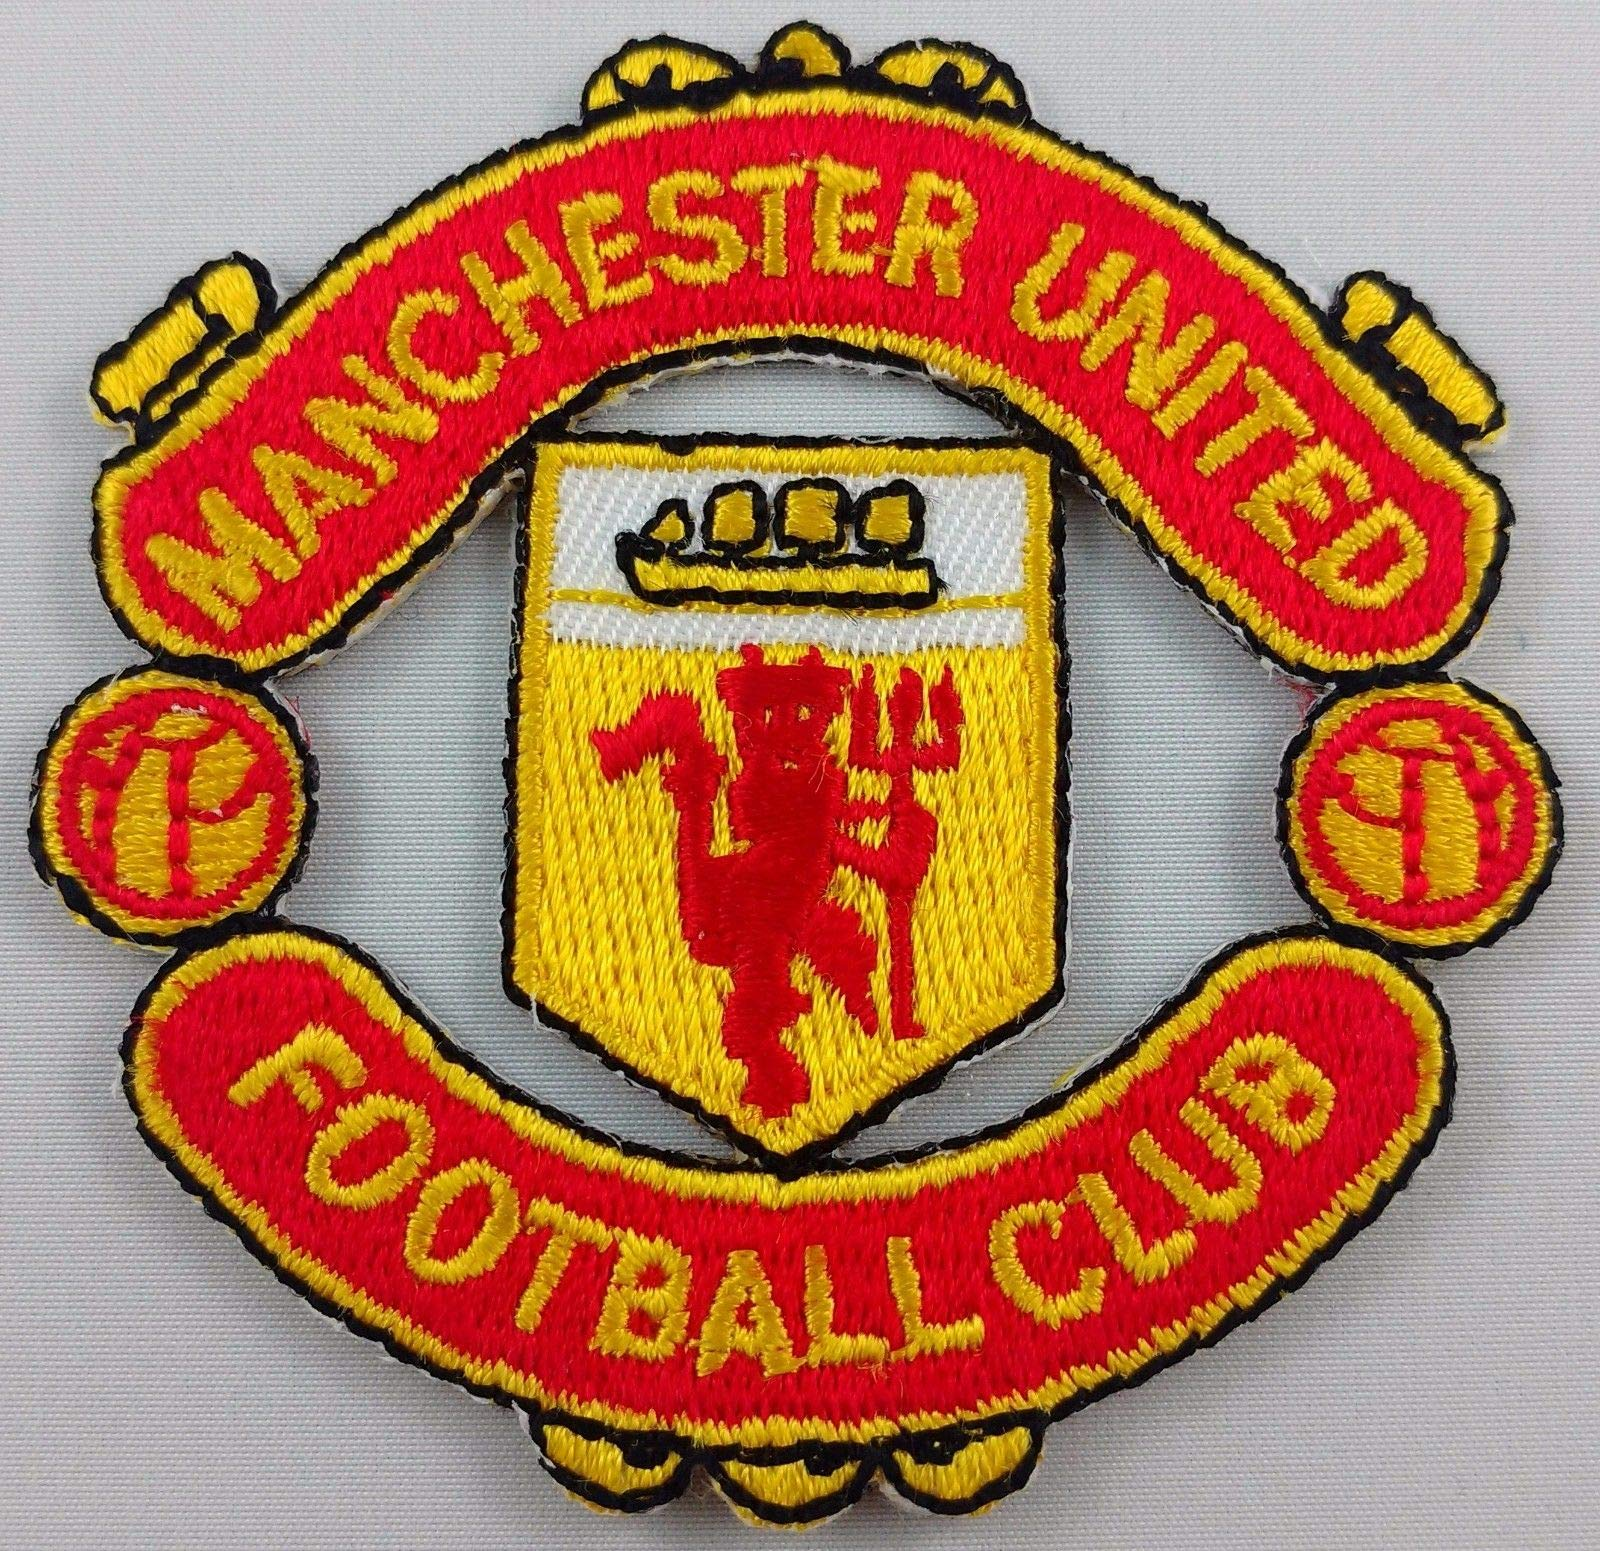 Embroidery Patch Manchester United Football Club Soccer Badge Applique 2.5''x2.5'' by Danlex